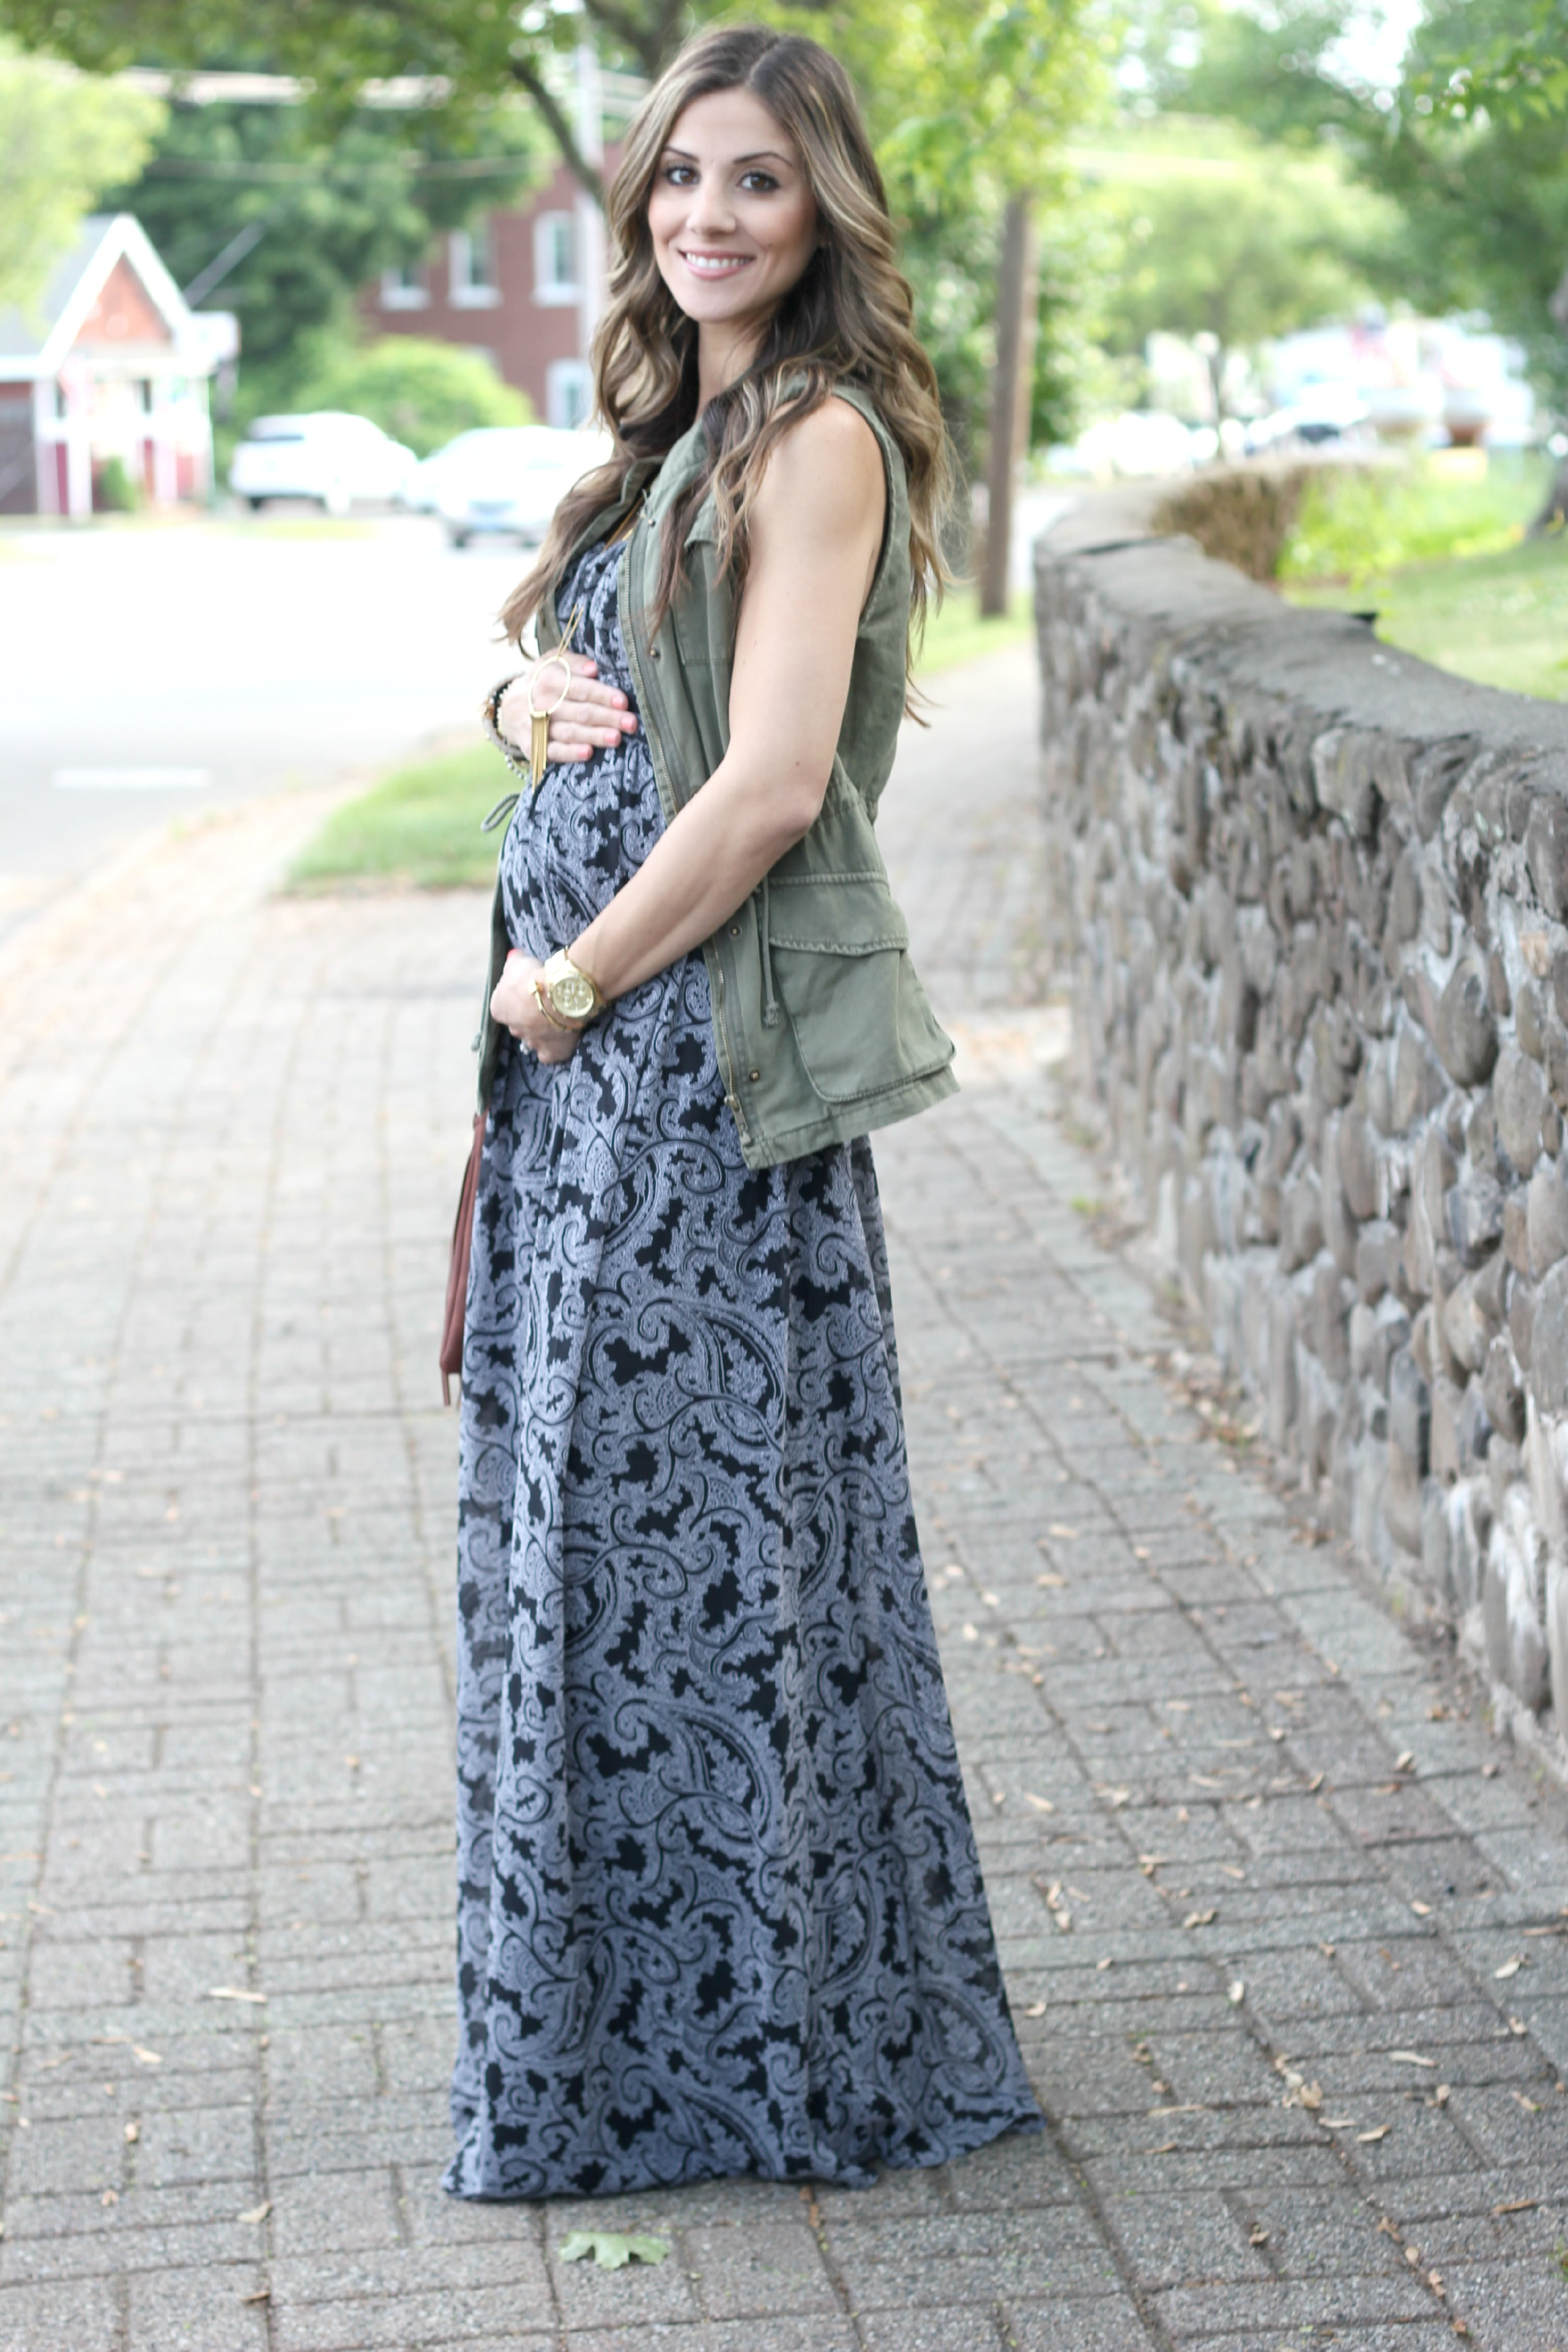 Paisley maternity maxi dress lauren mcbride maternity fashion jessica simpson strapless empire waist maternity maxi destination maternity maternity fashion ombrellifo Images